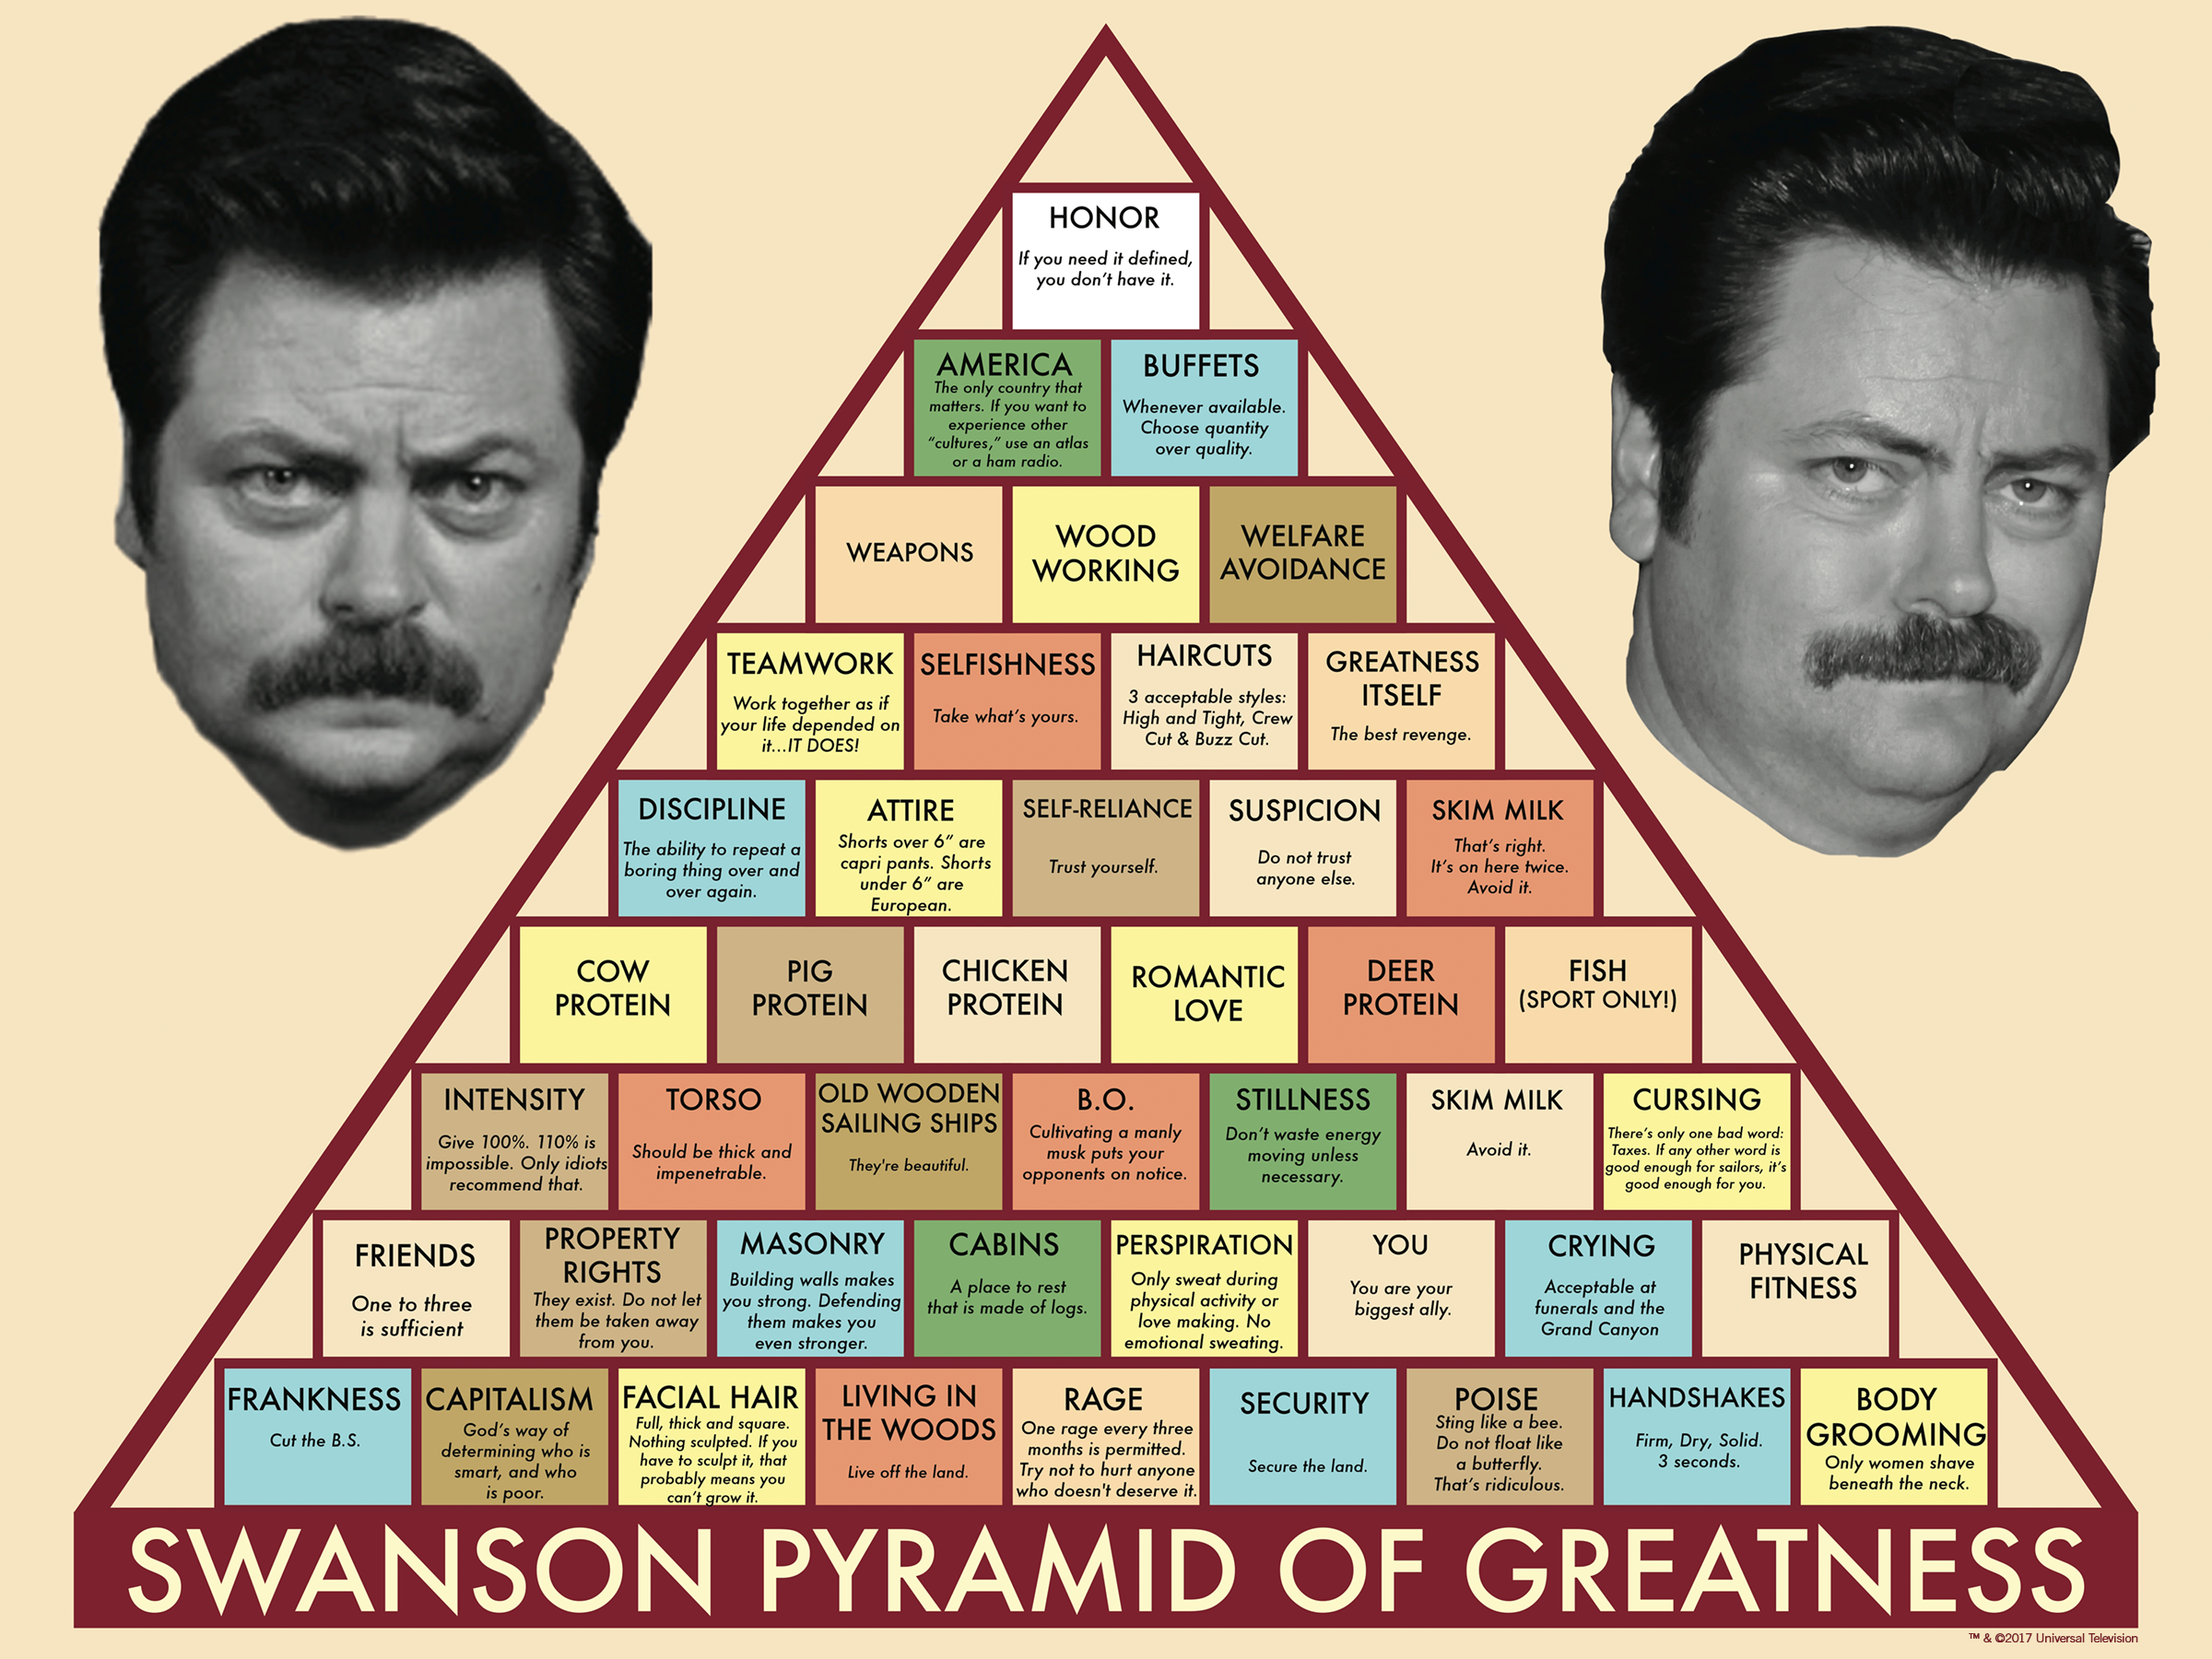 Ron Swanson's Pyramid of Greatness | Parks and Recreation Wiki